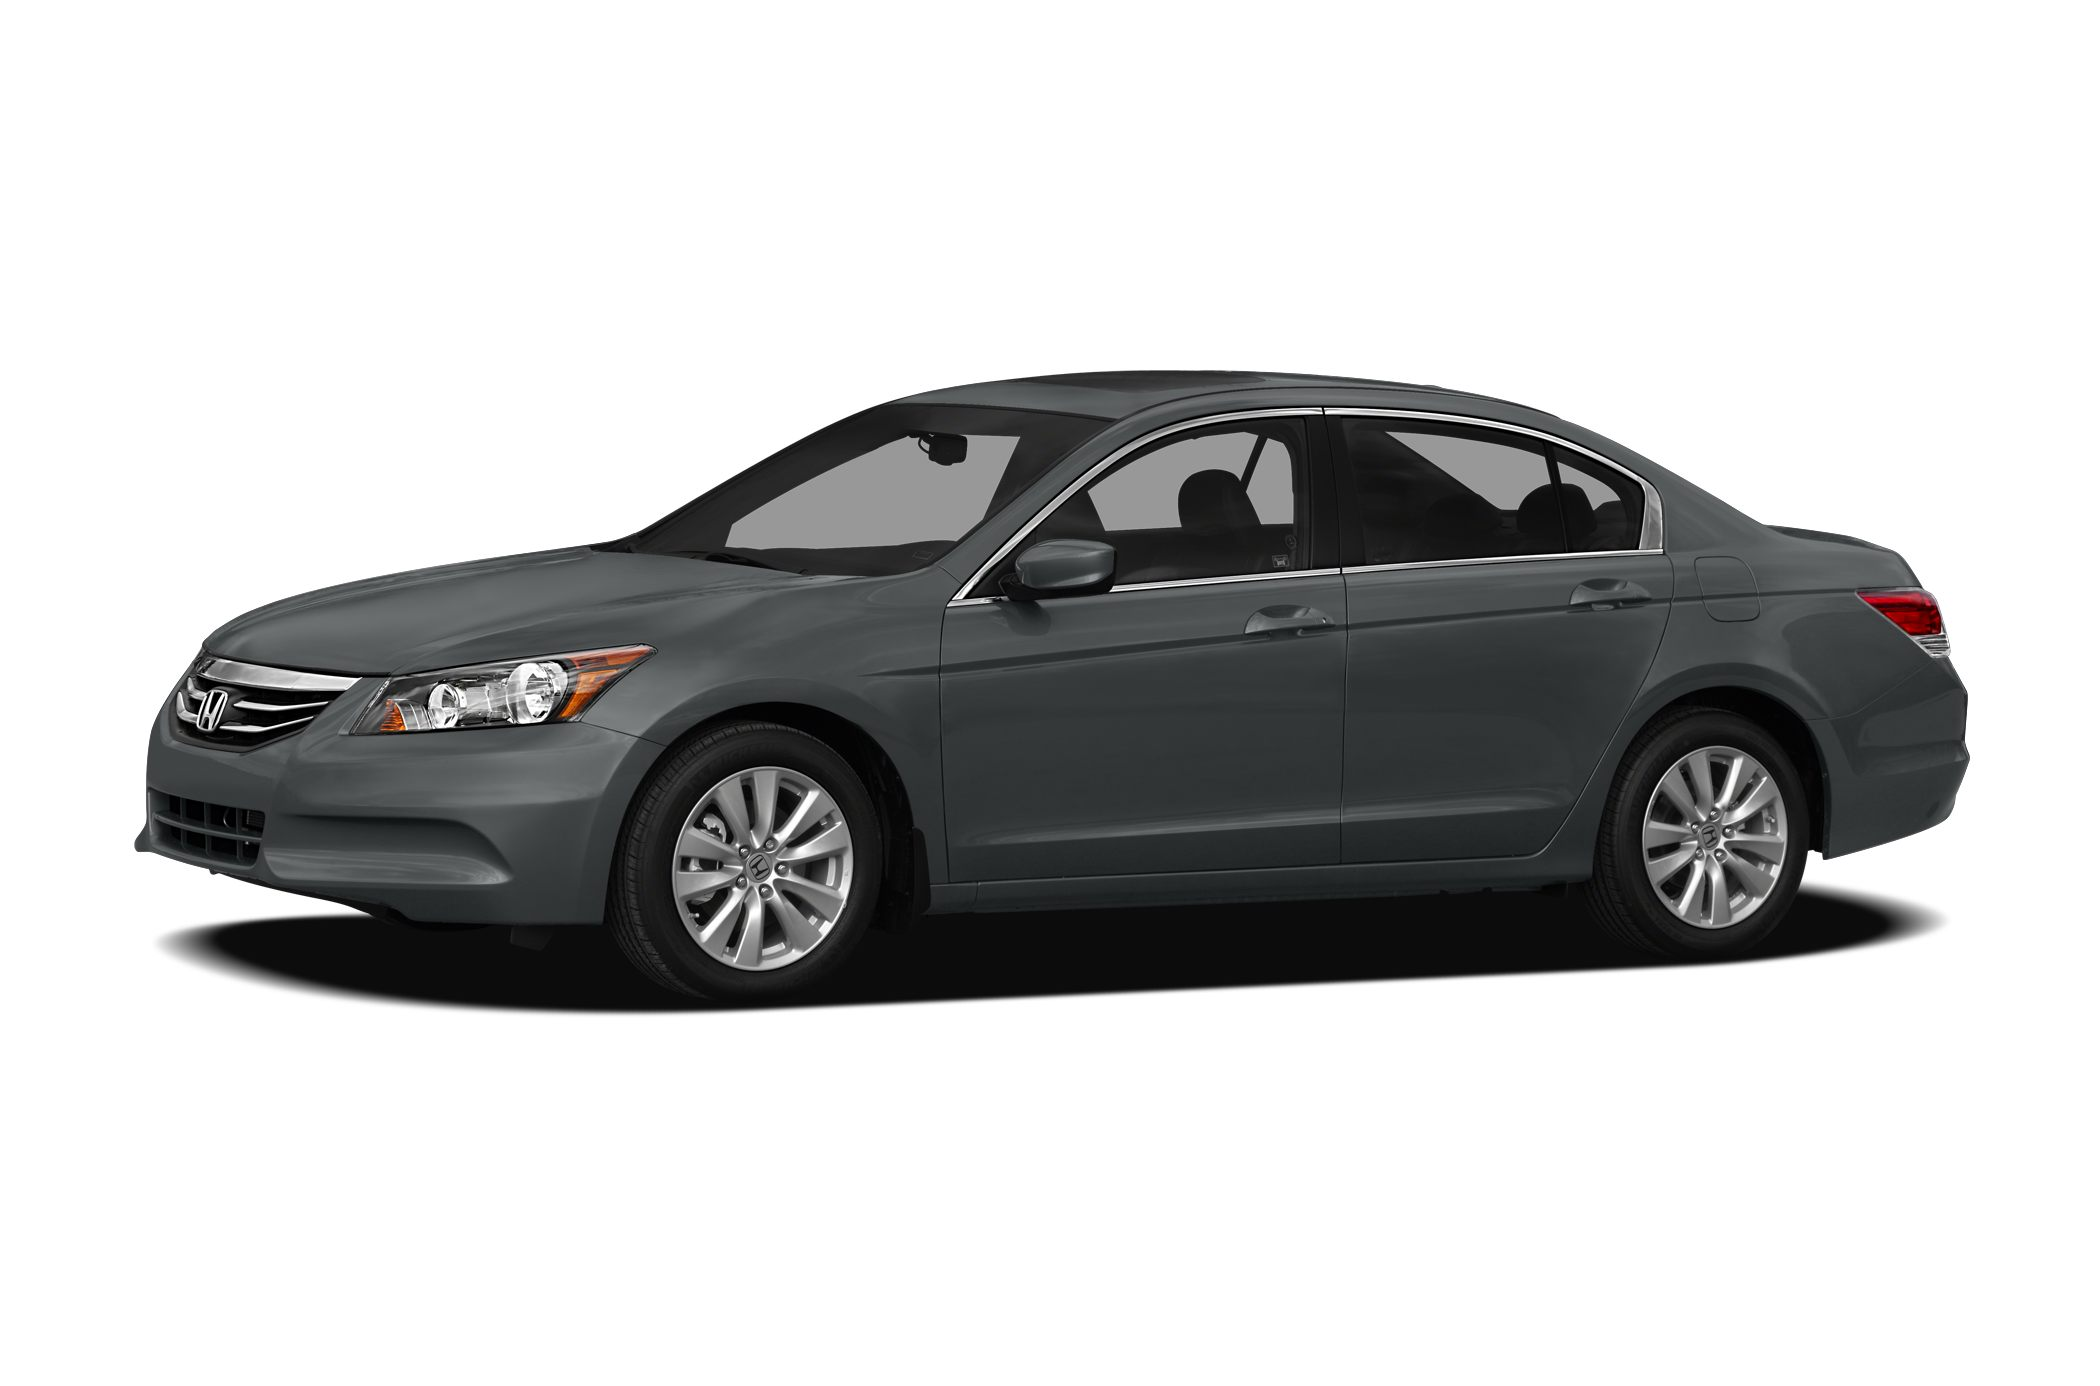 2012 Honda Accord EX Sedan for sale in Erie for $18,950 with 25,564 miles.